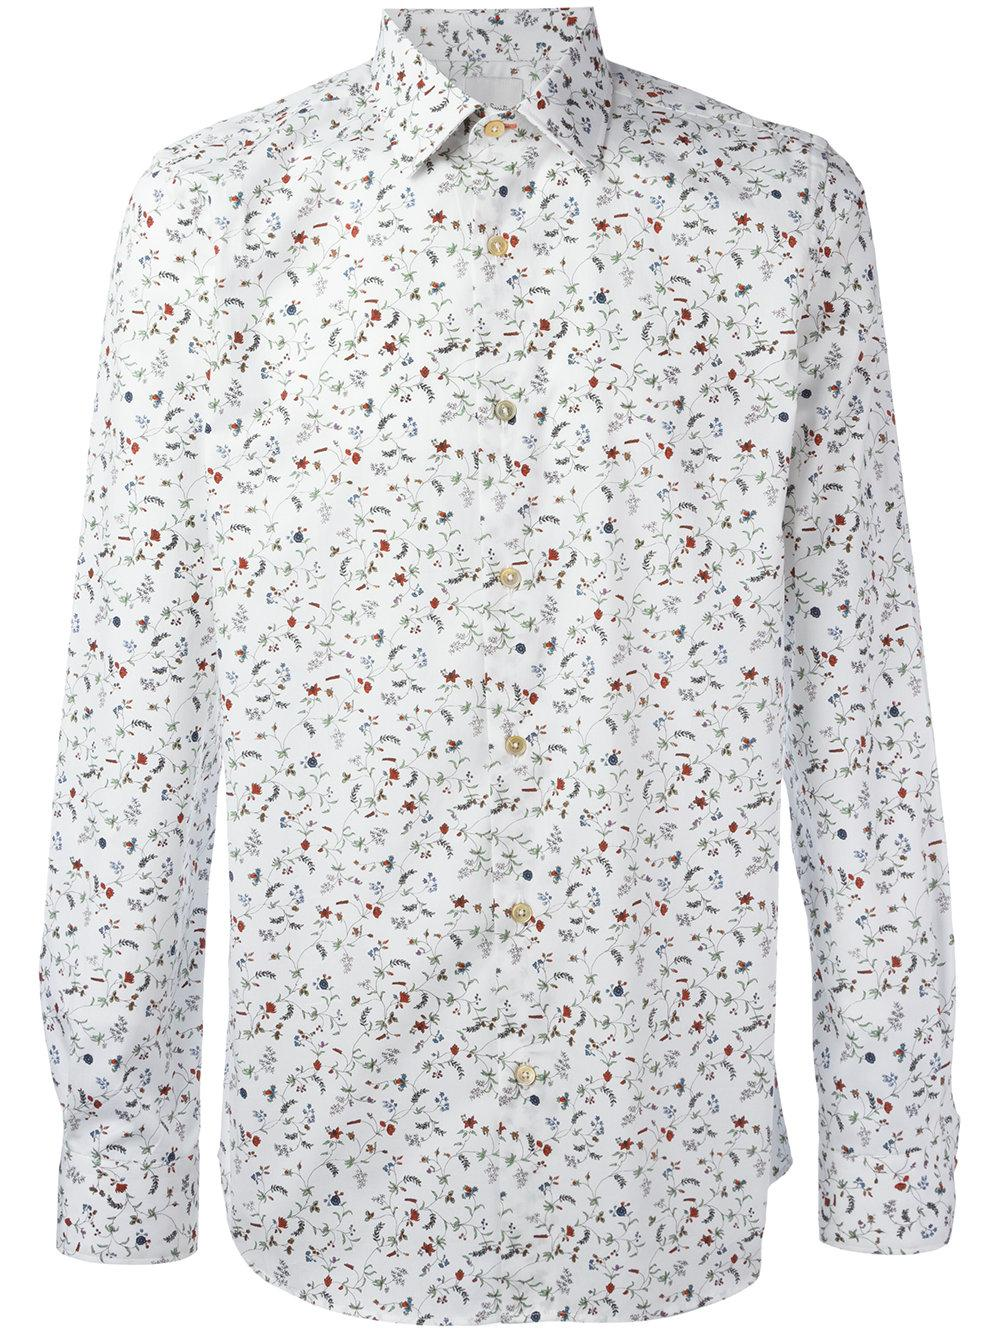 Paul smith floral print shirt in white for men lyst for Mens white floral shirt